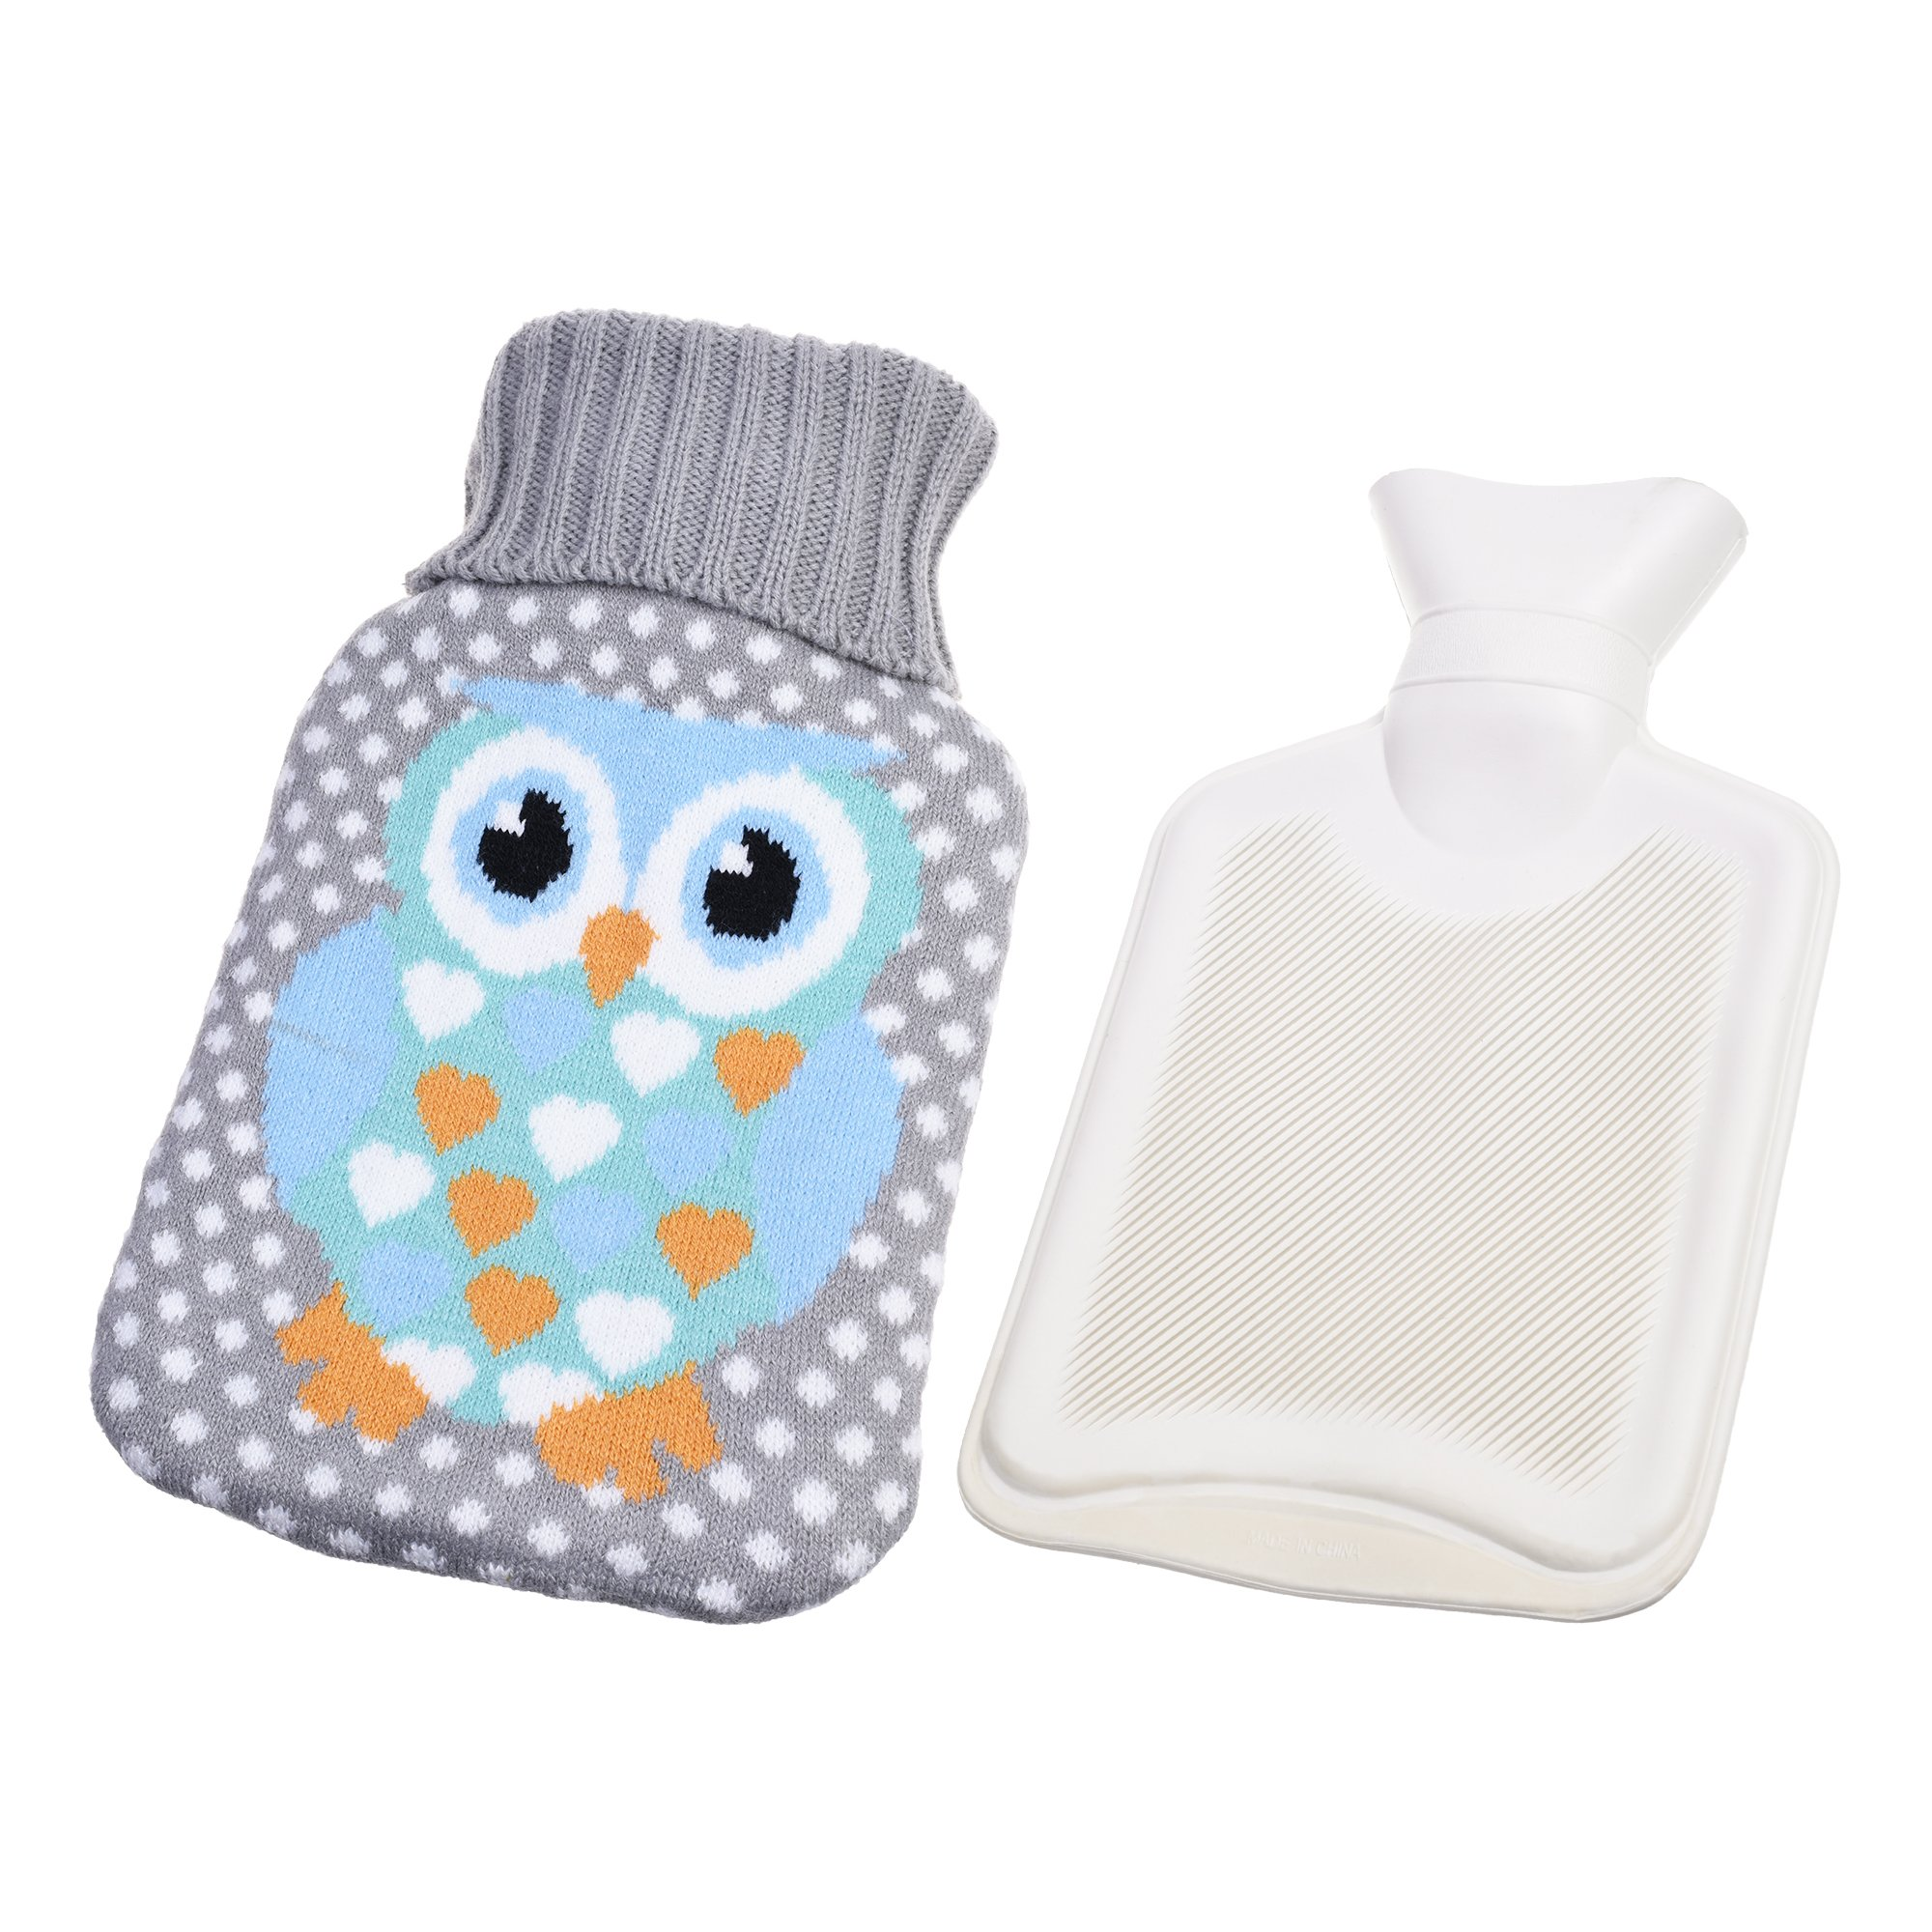 Kloud City Cute Rubber Hot Water Bag with Plush Owl Fleece Knitted Covers 1 Liter Water Injection Warm Heater Bag for Hand Feet Belly Warmer Gray